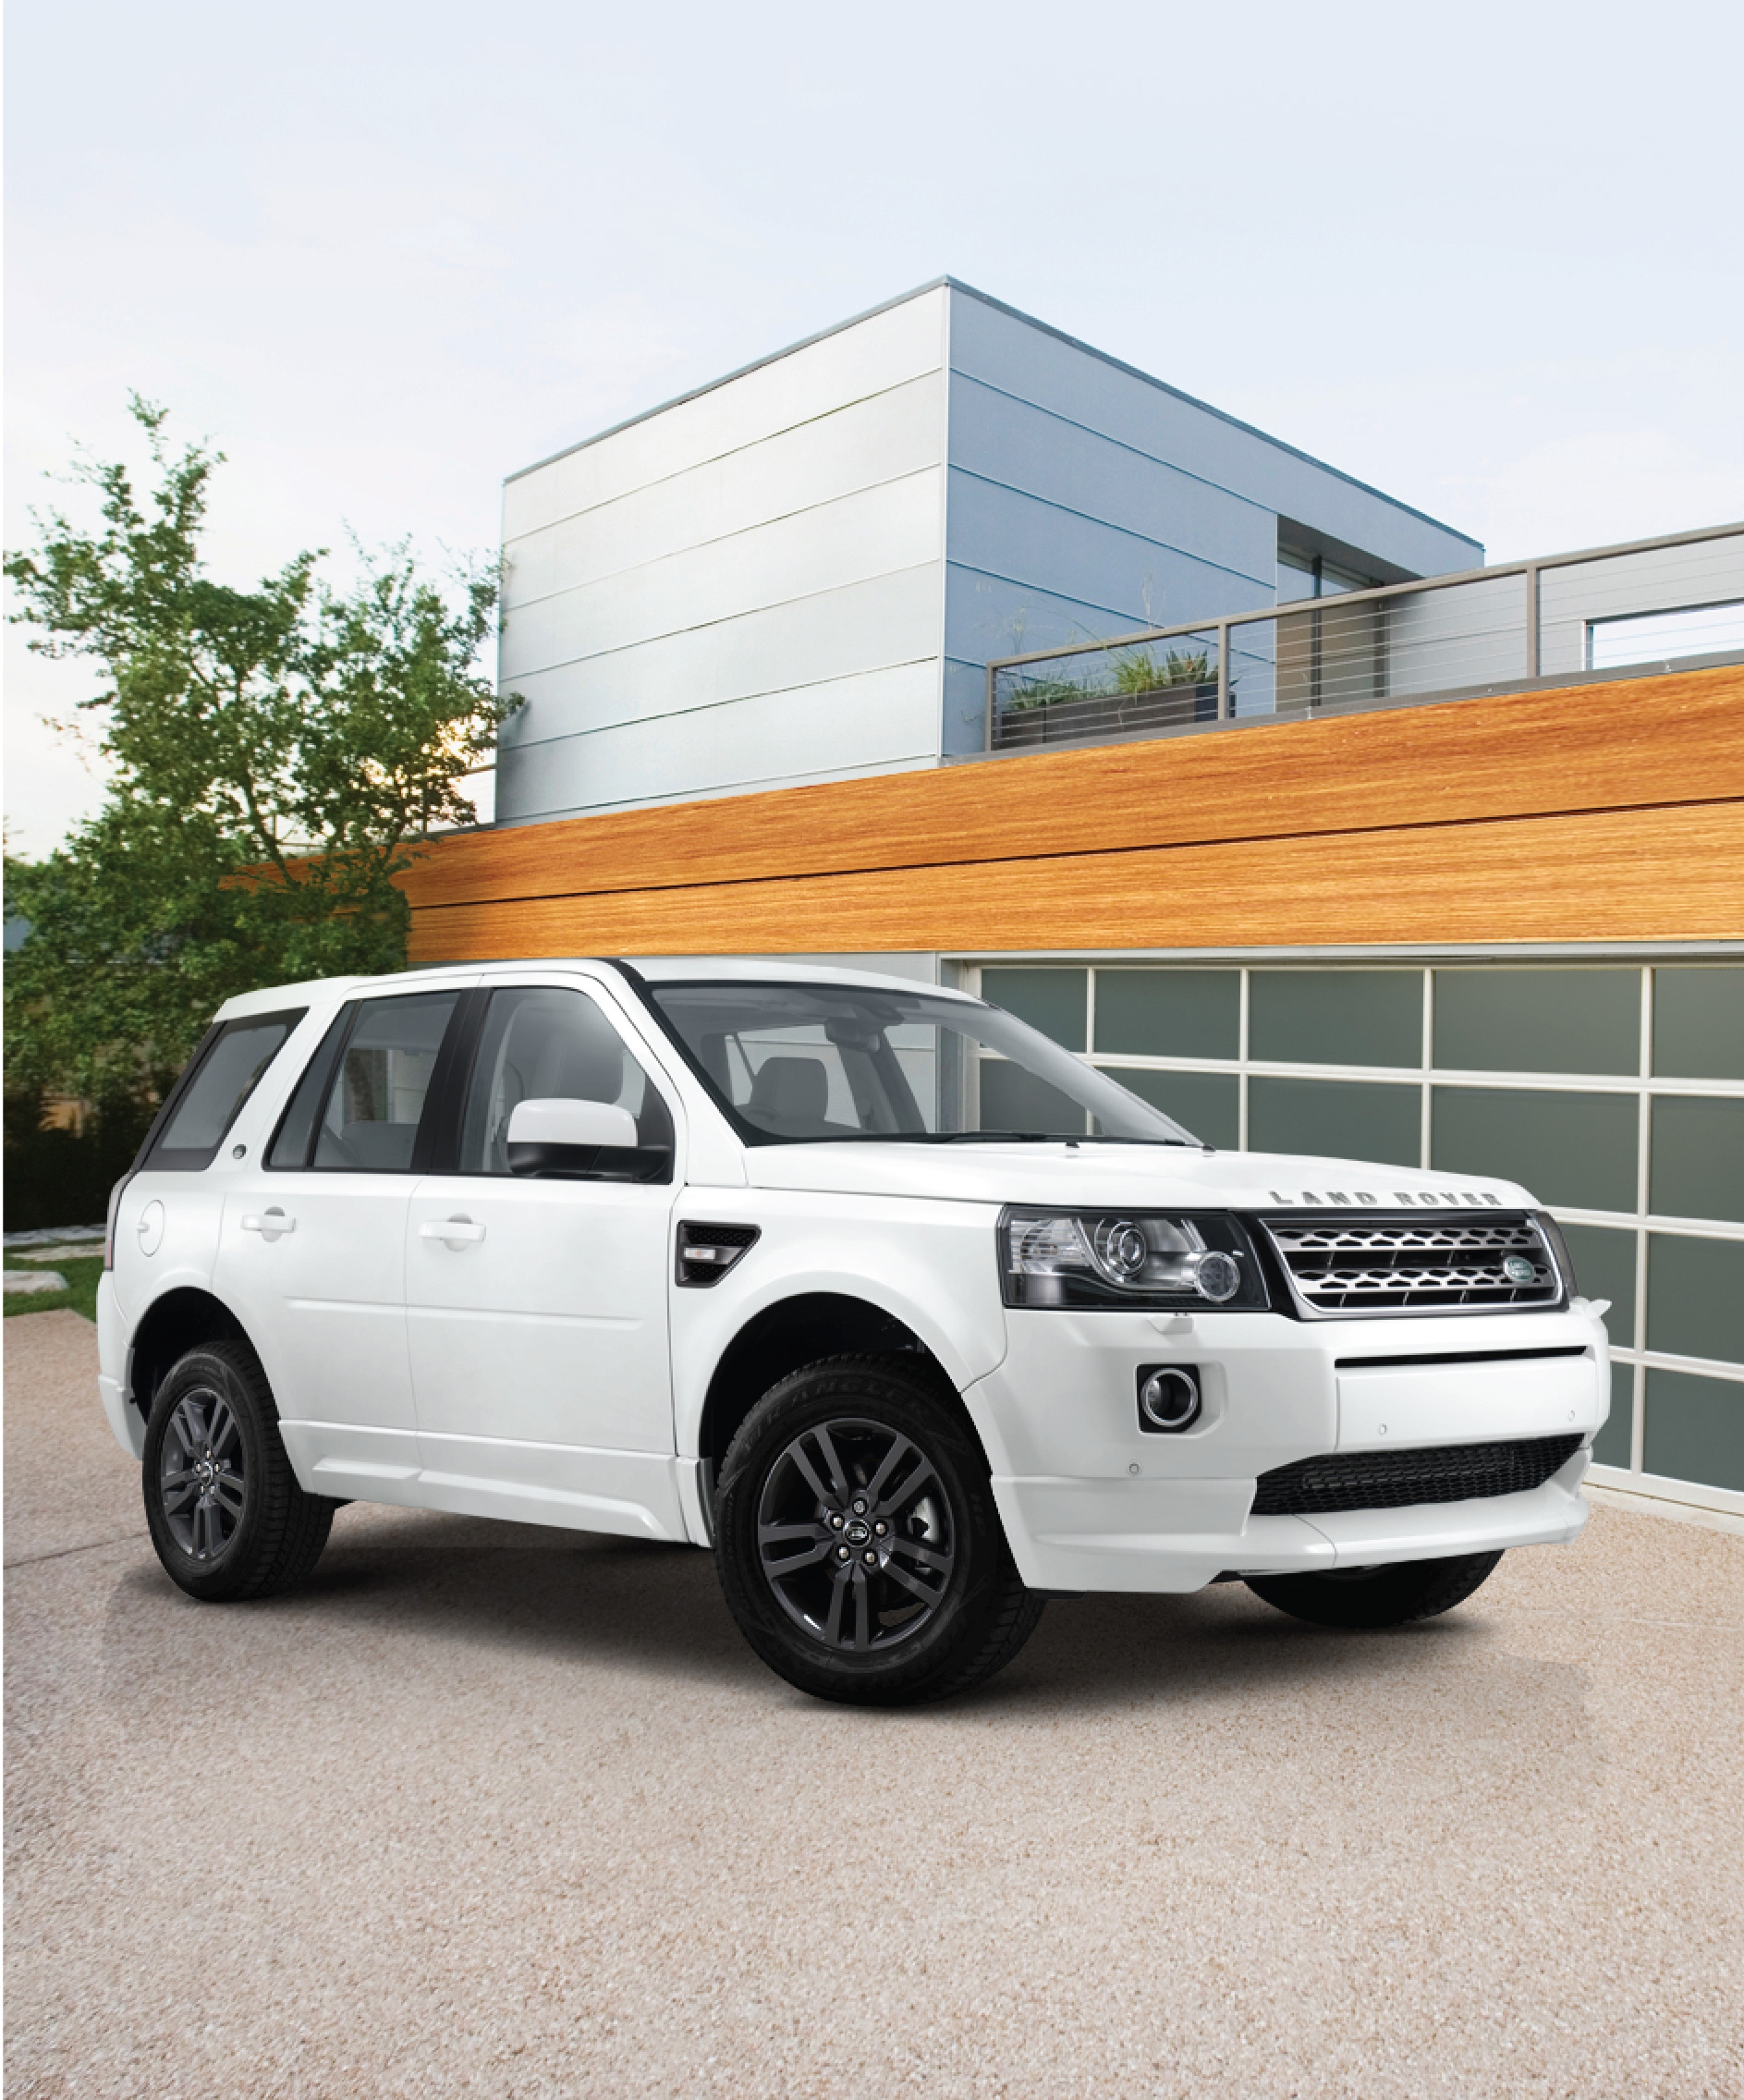 Land Rover launches Freelander 2 Sterling Edition